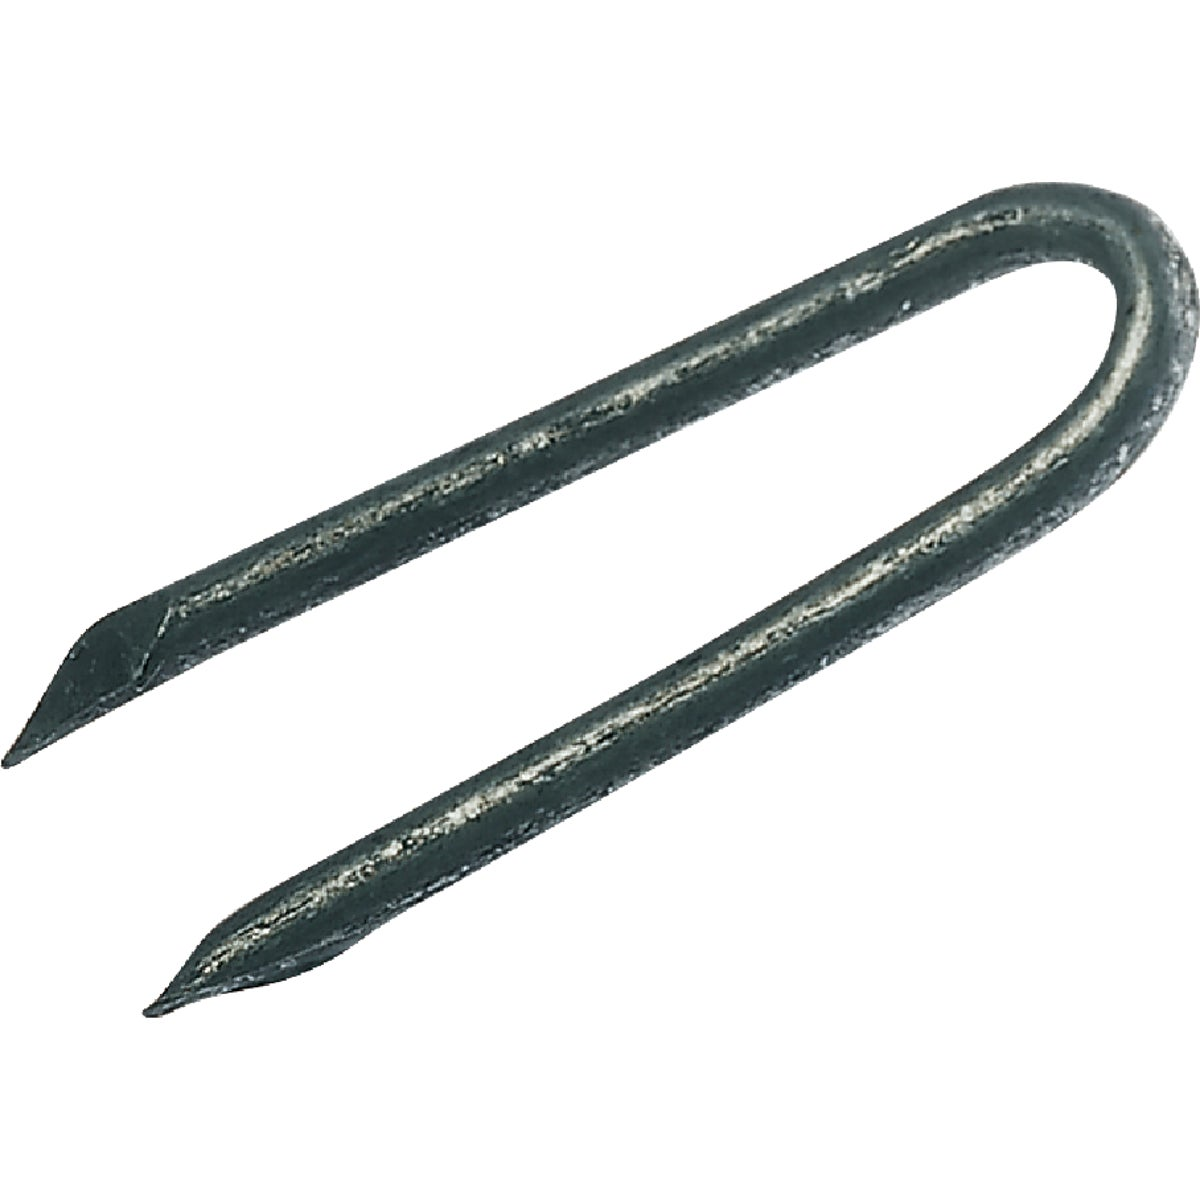 "5LB HDG 1-1/4"" STAPLE - 721099 by Primesource"